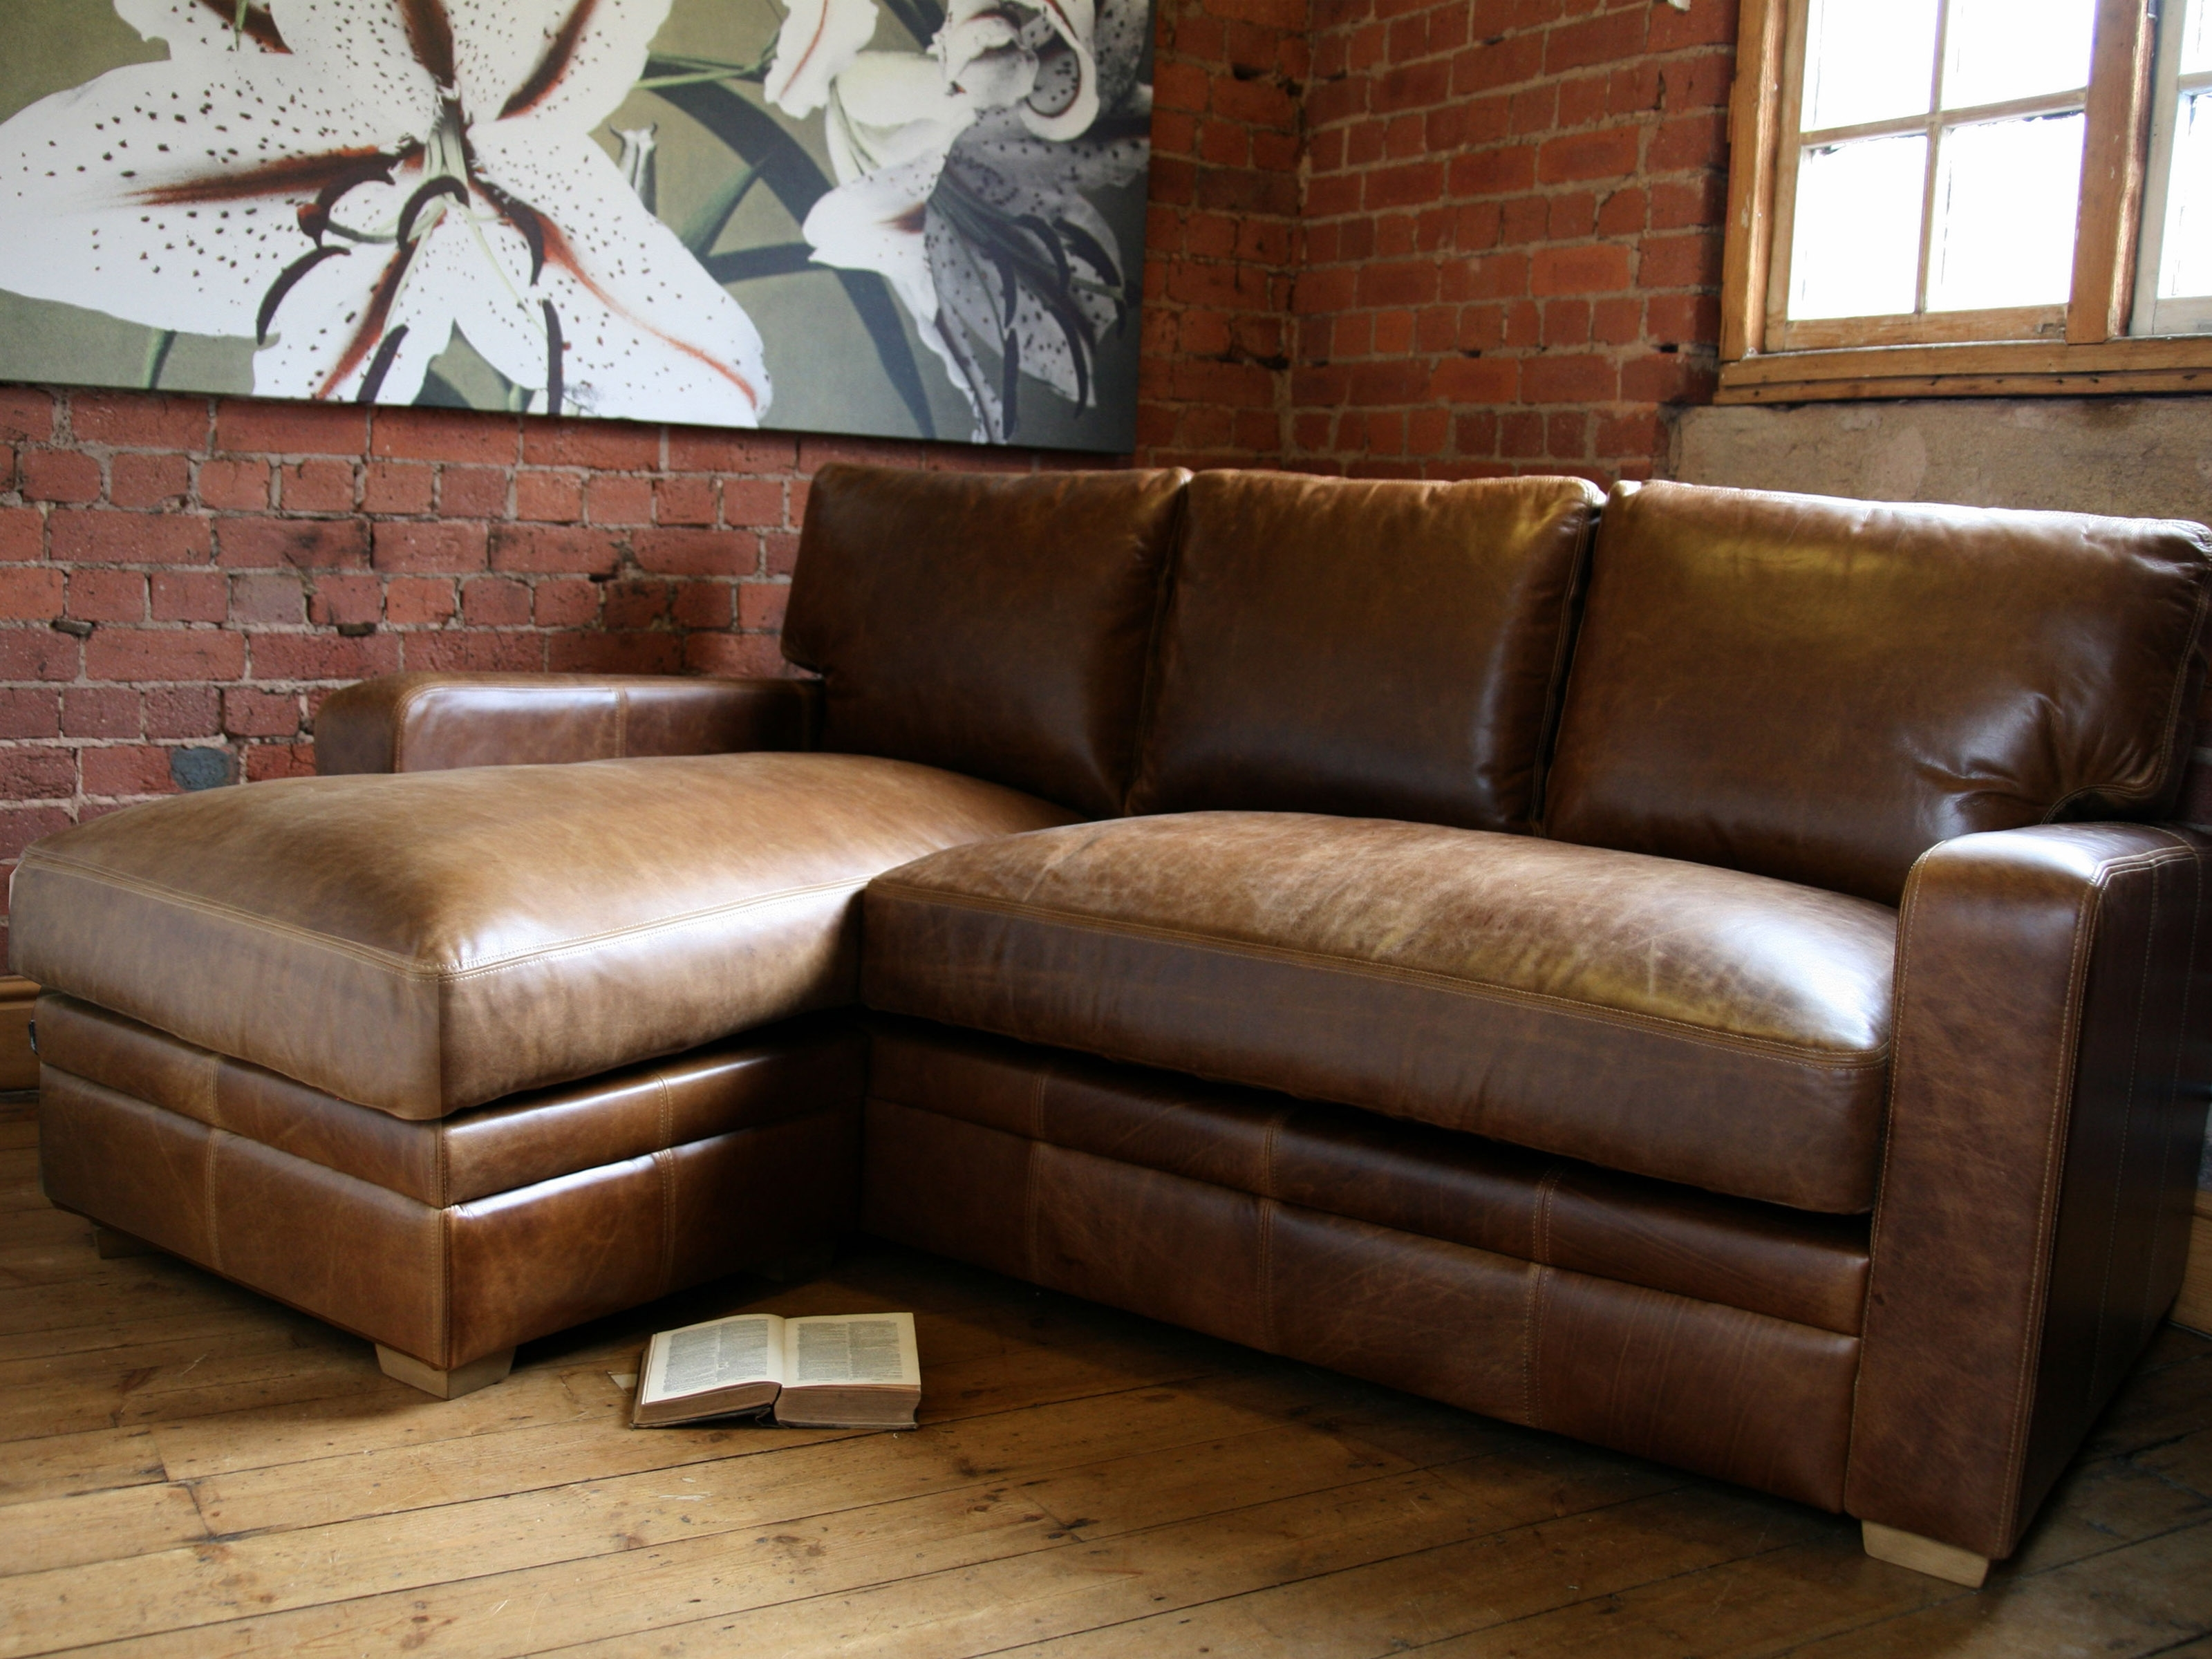 Favorite Lounge Sofas And Chairs Intended For Sofa : Armchair Chaise Lounge Elegant Sofa Graceful Leather Chaise (View 15 of 20)